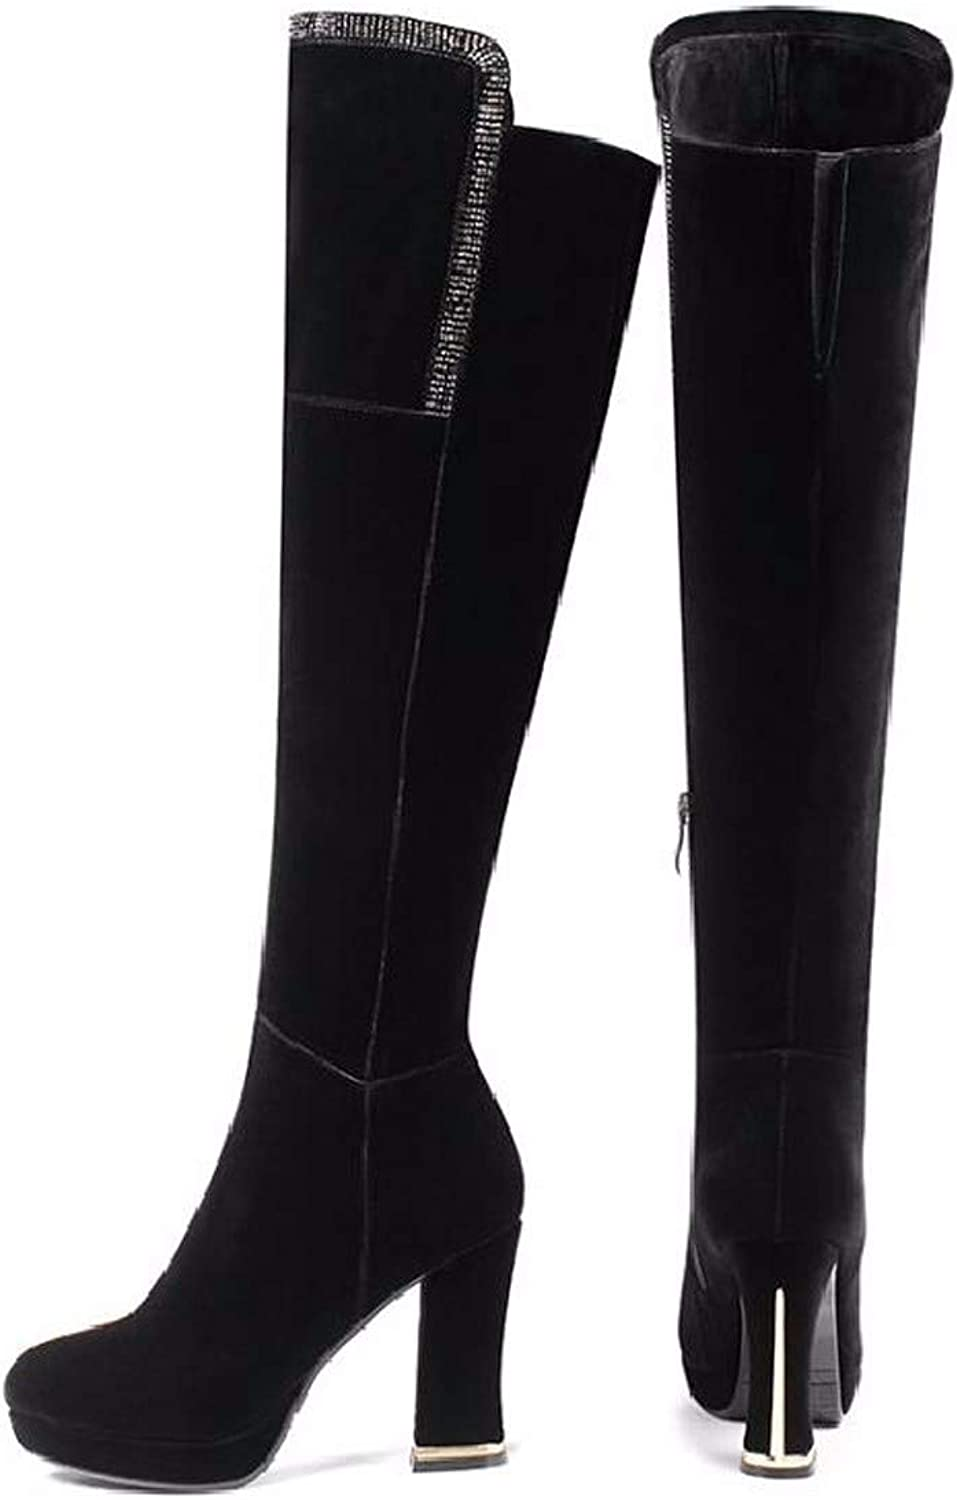 SFSYDDY Popular shoes Over Knee Boots with High 9Cm Fashion Wild Thick Heels Boots Waterproof Tables Knight Boots.